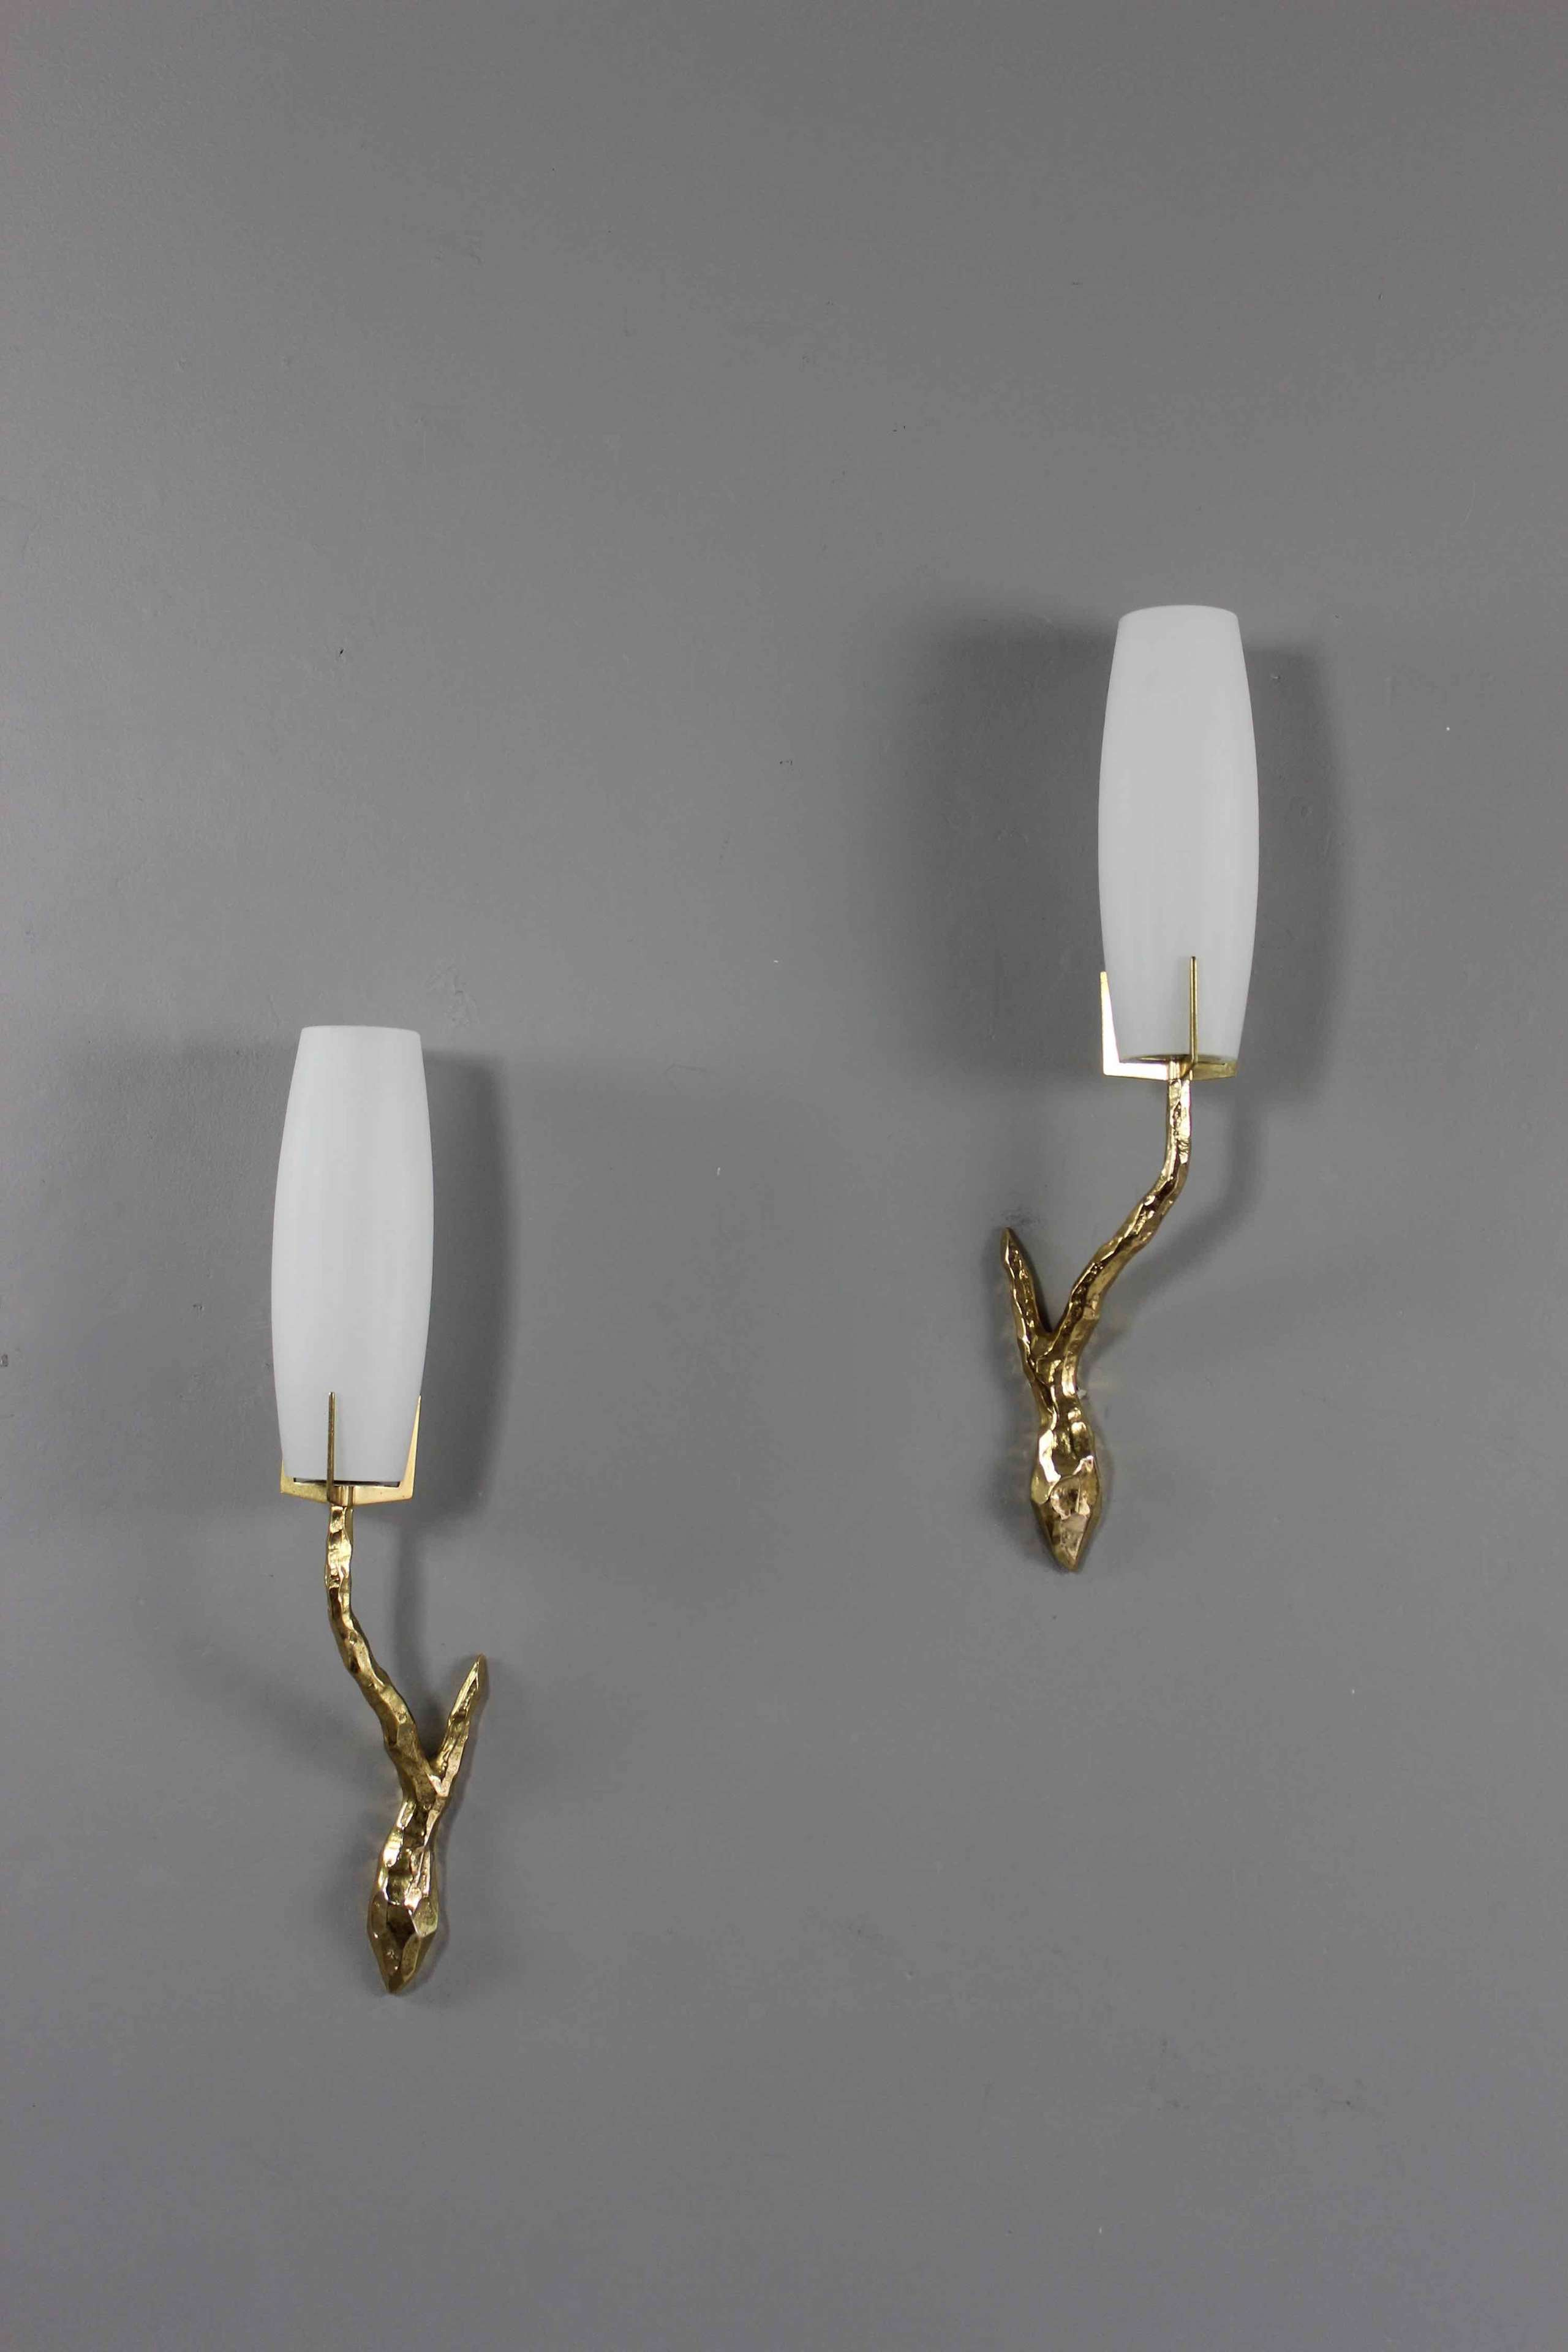 Pair of wall sconces by Felix Agostini